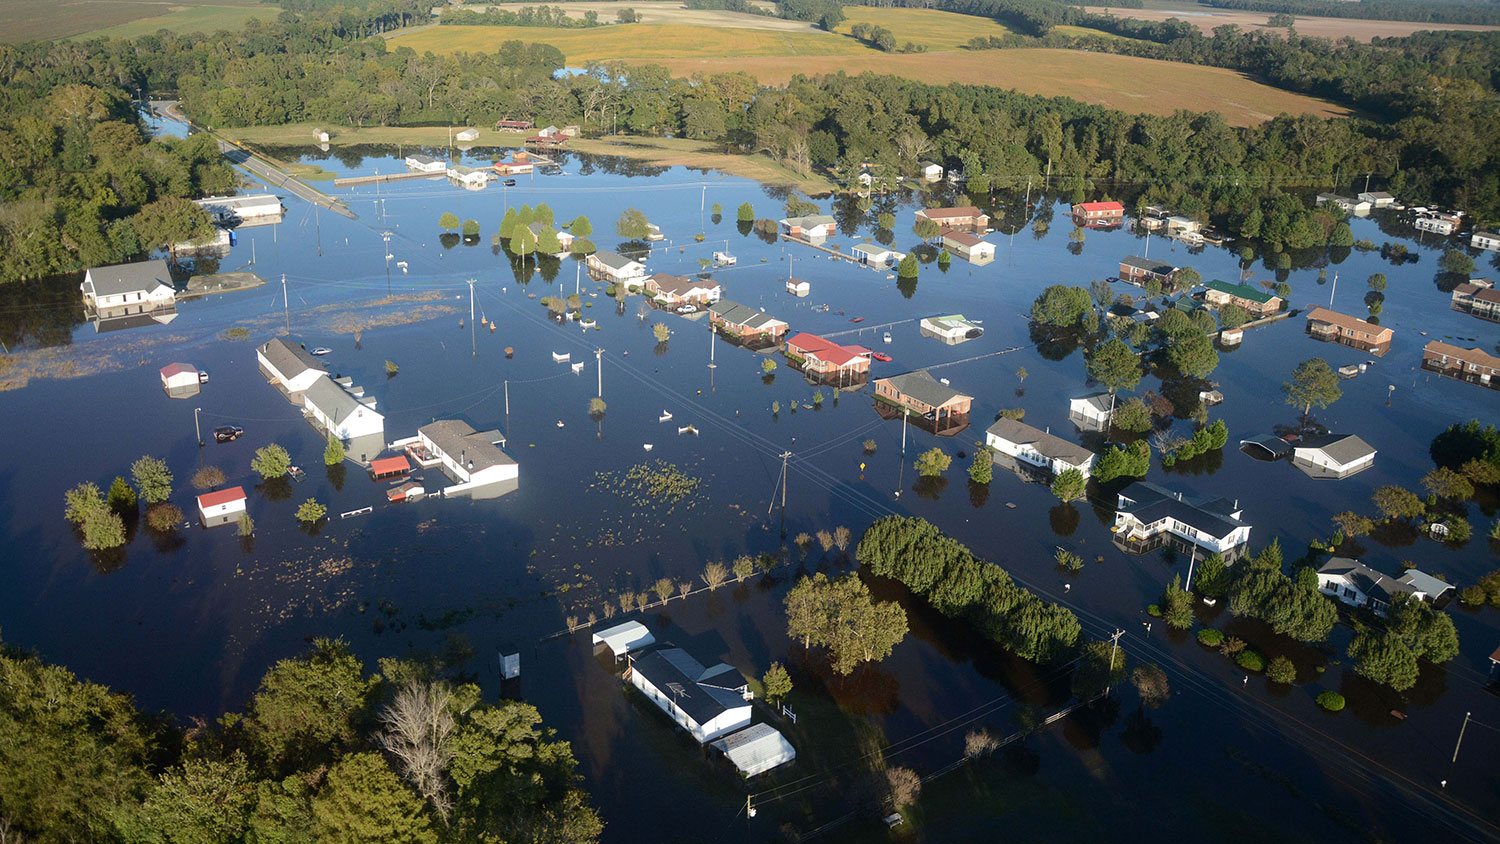 2016 flooded homes in Princeville, NC